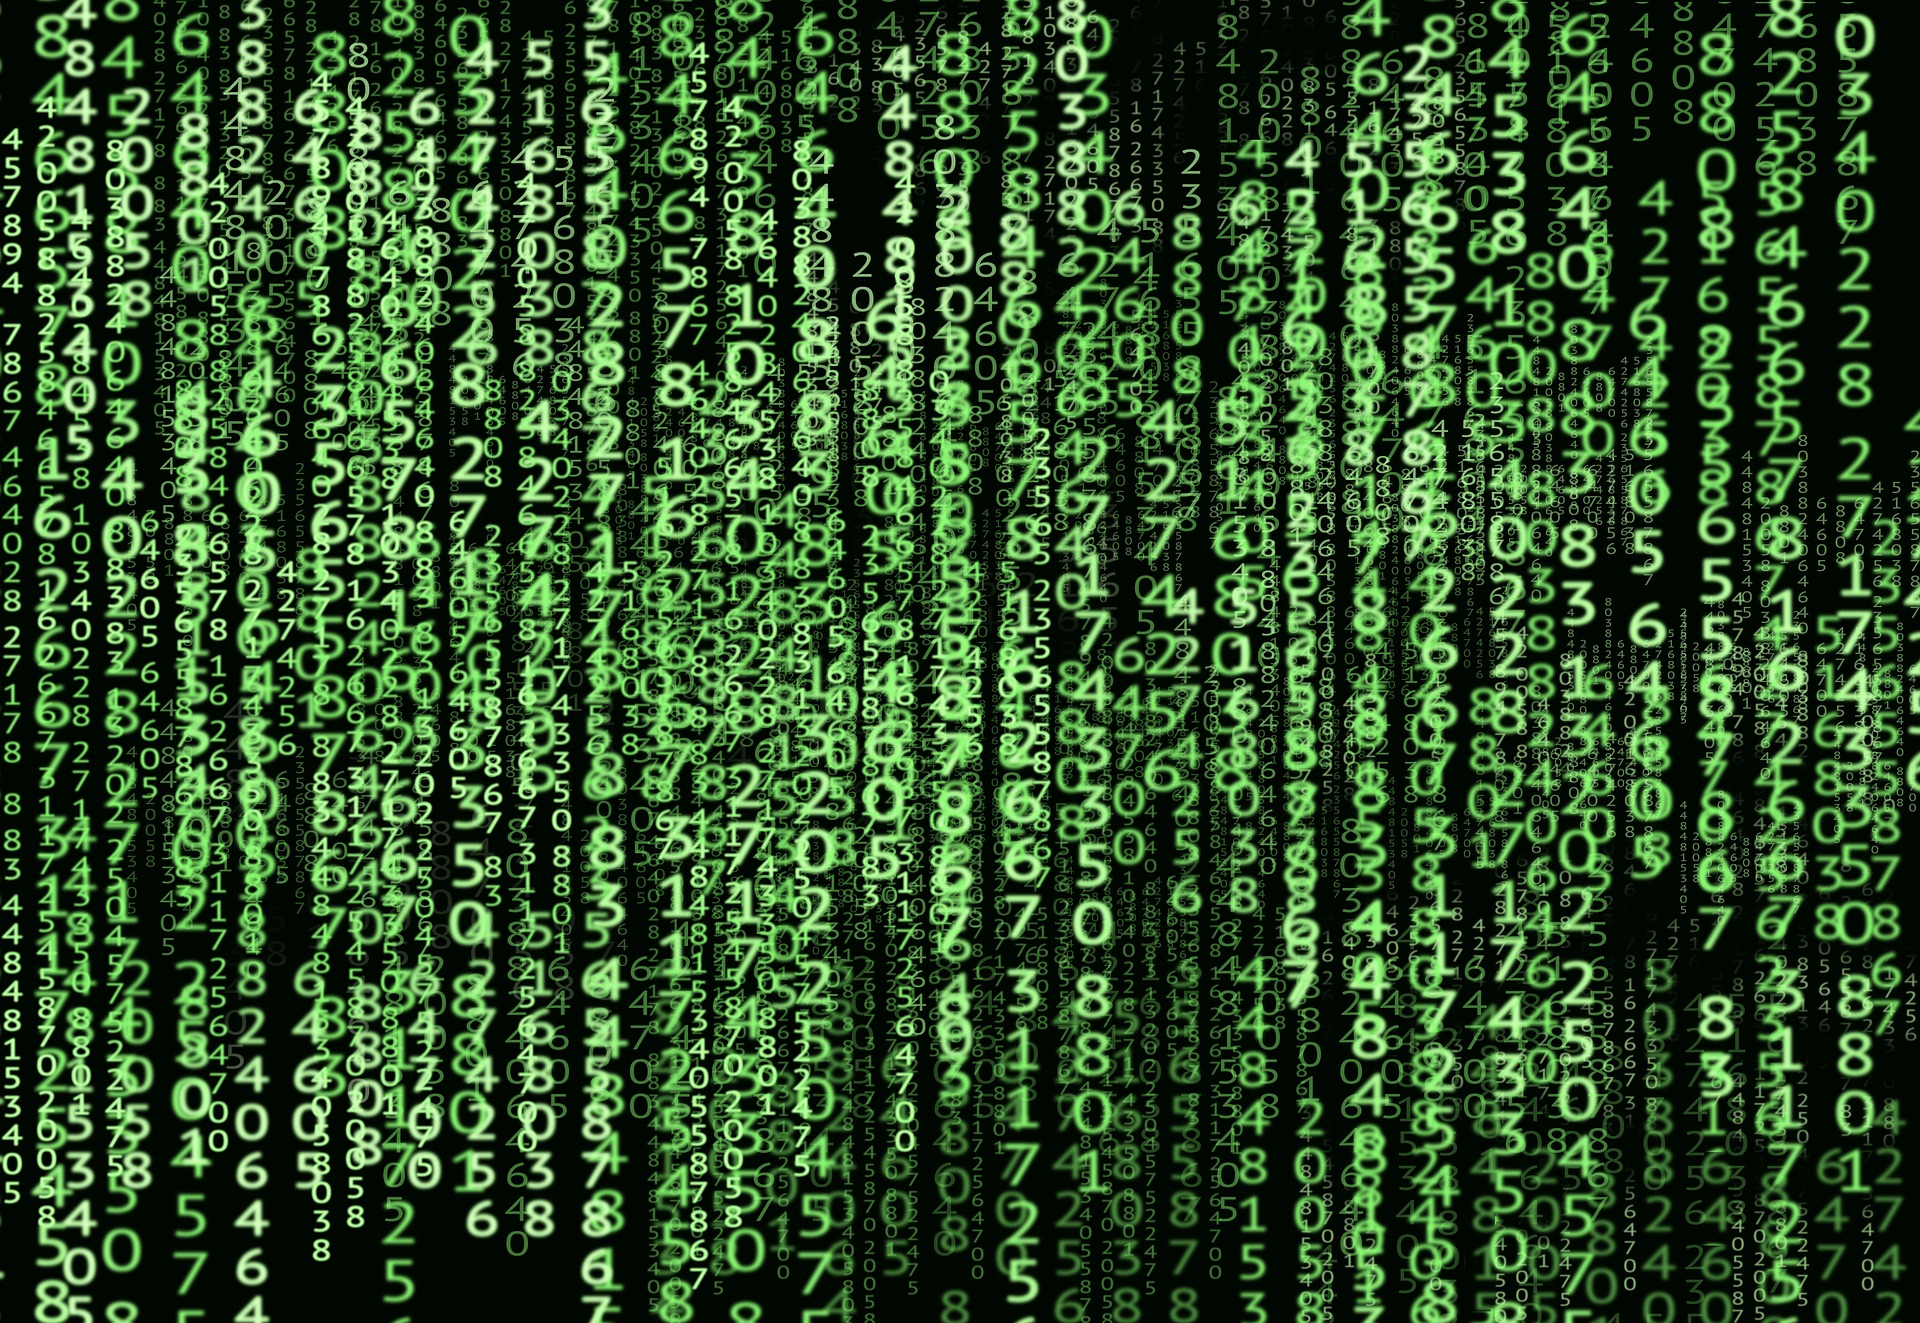 Matrix internet image